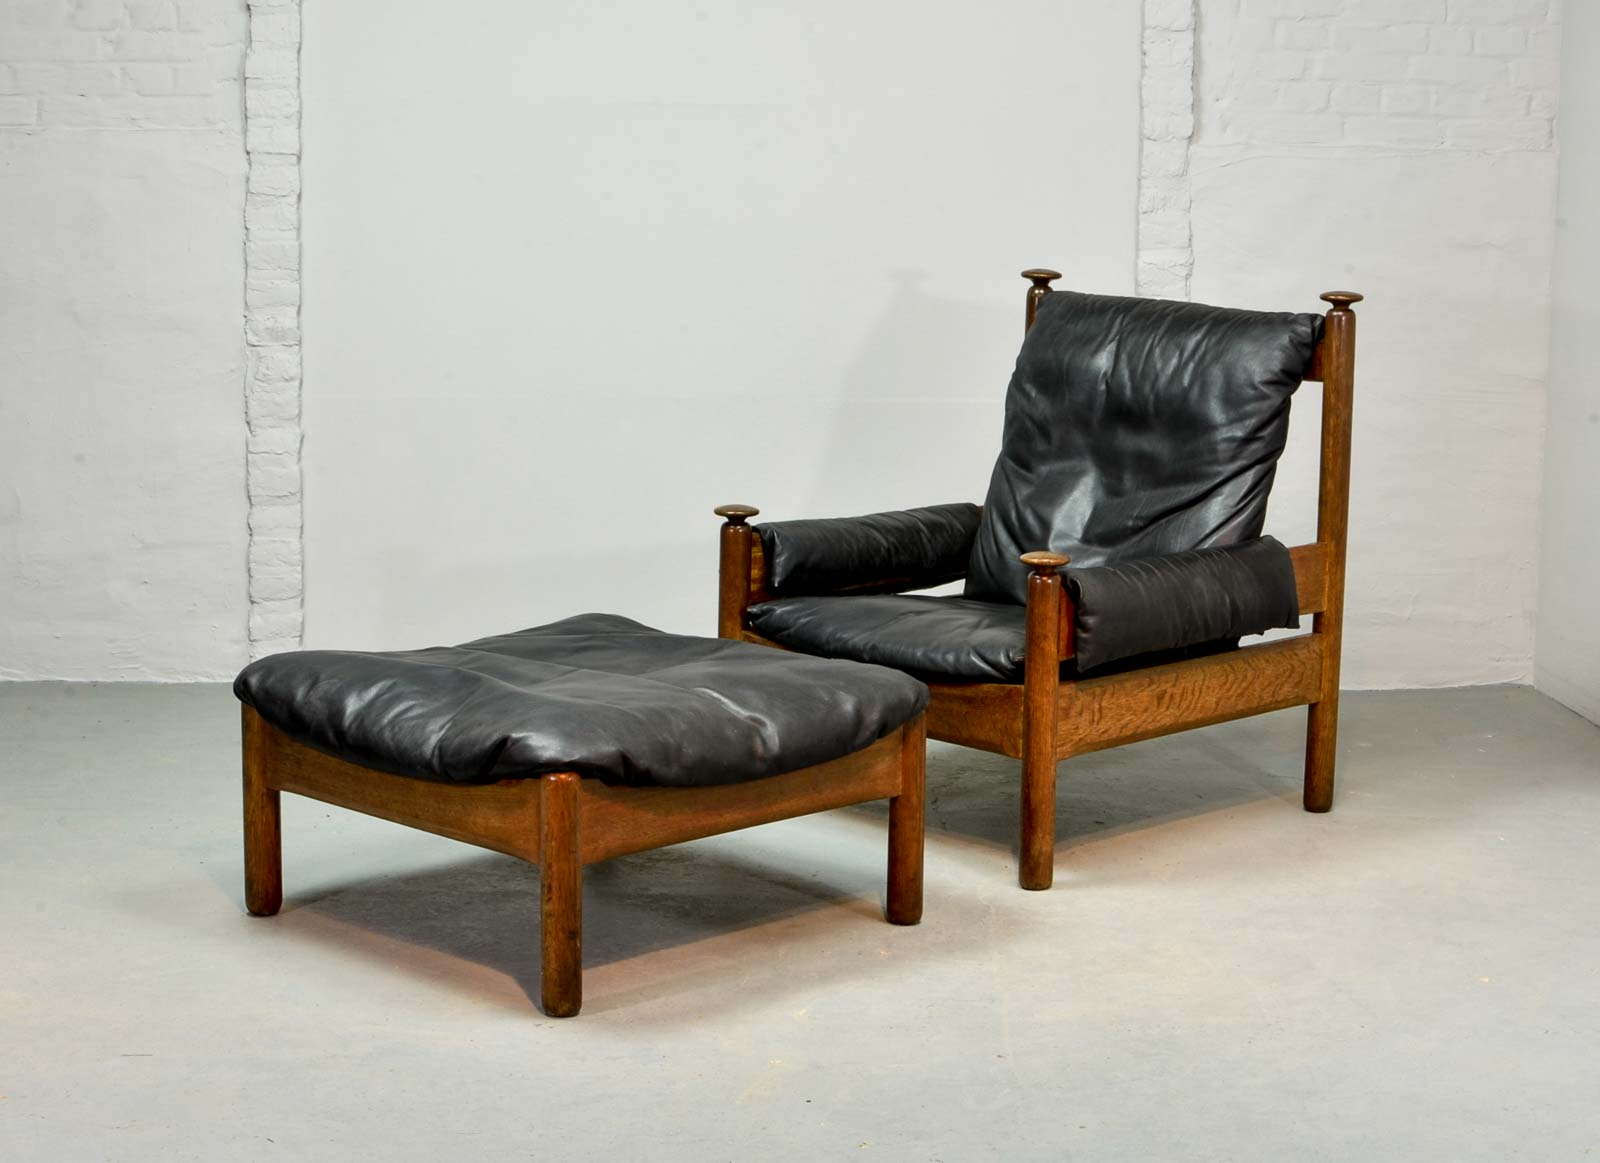 Sturdy Midcentury Black Leather Scandinavian Lounge Chair With Ottoman,  1960s At 1stdibs